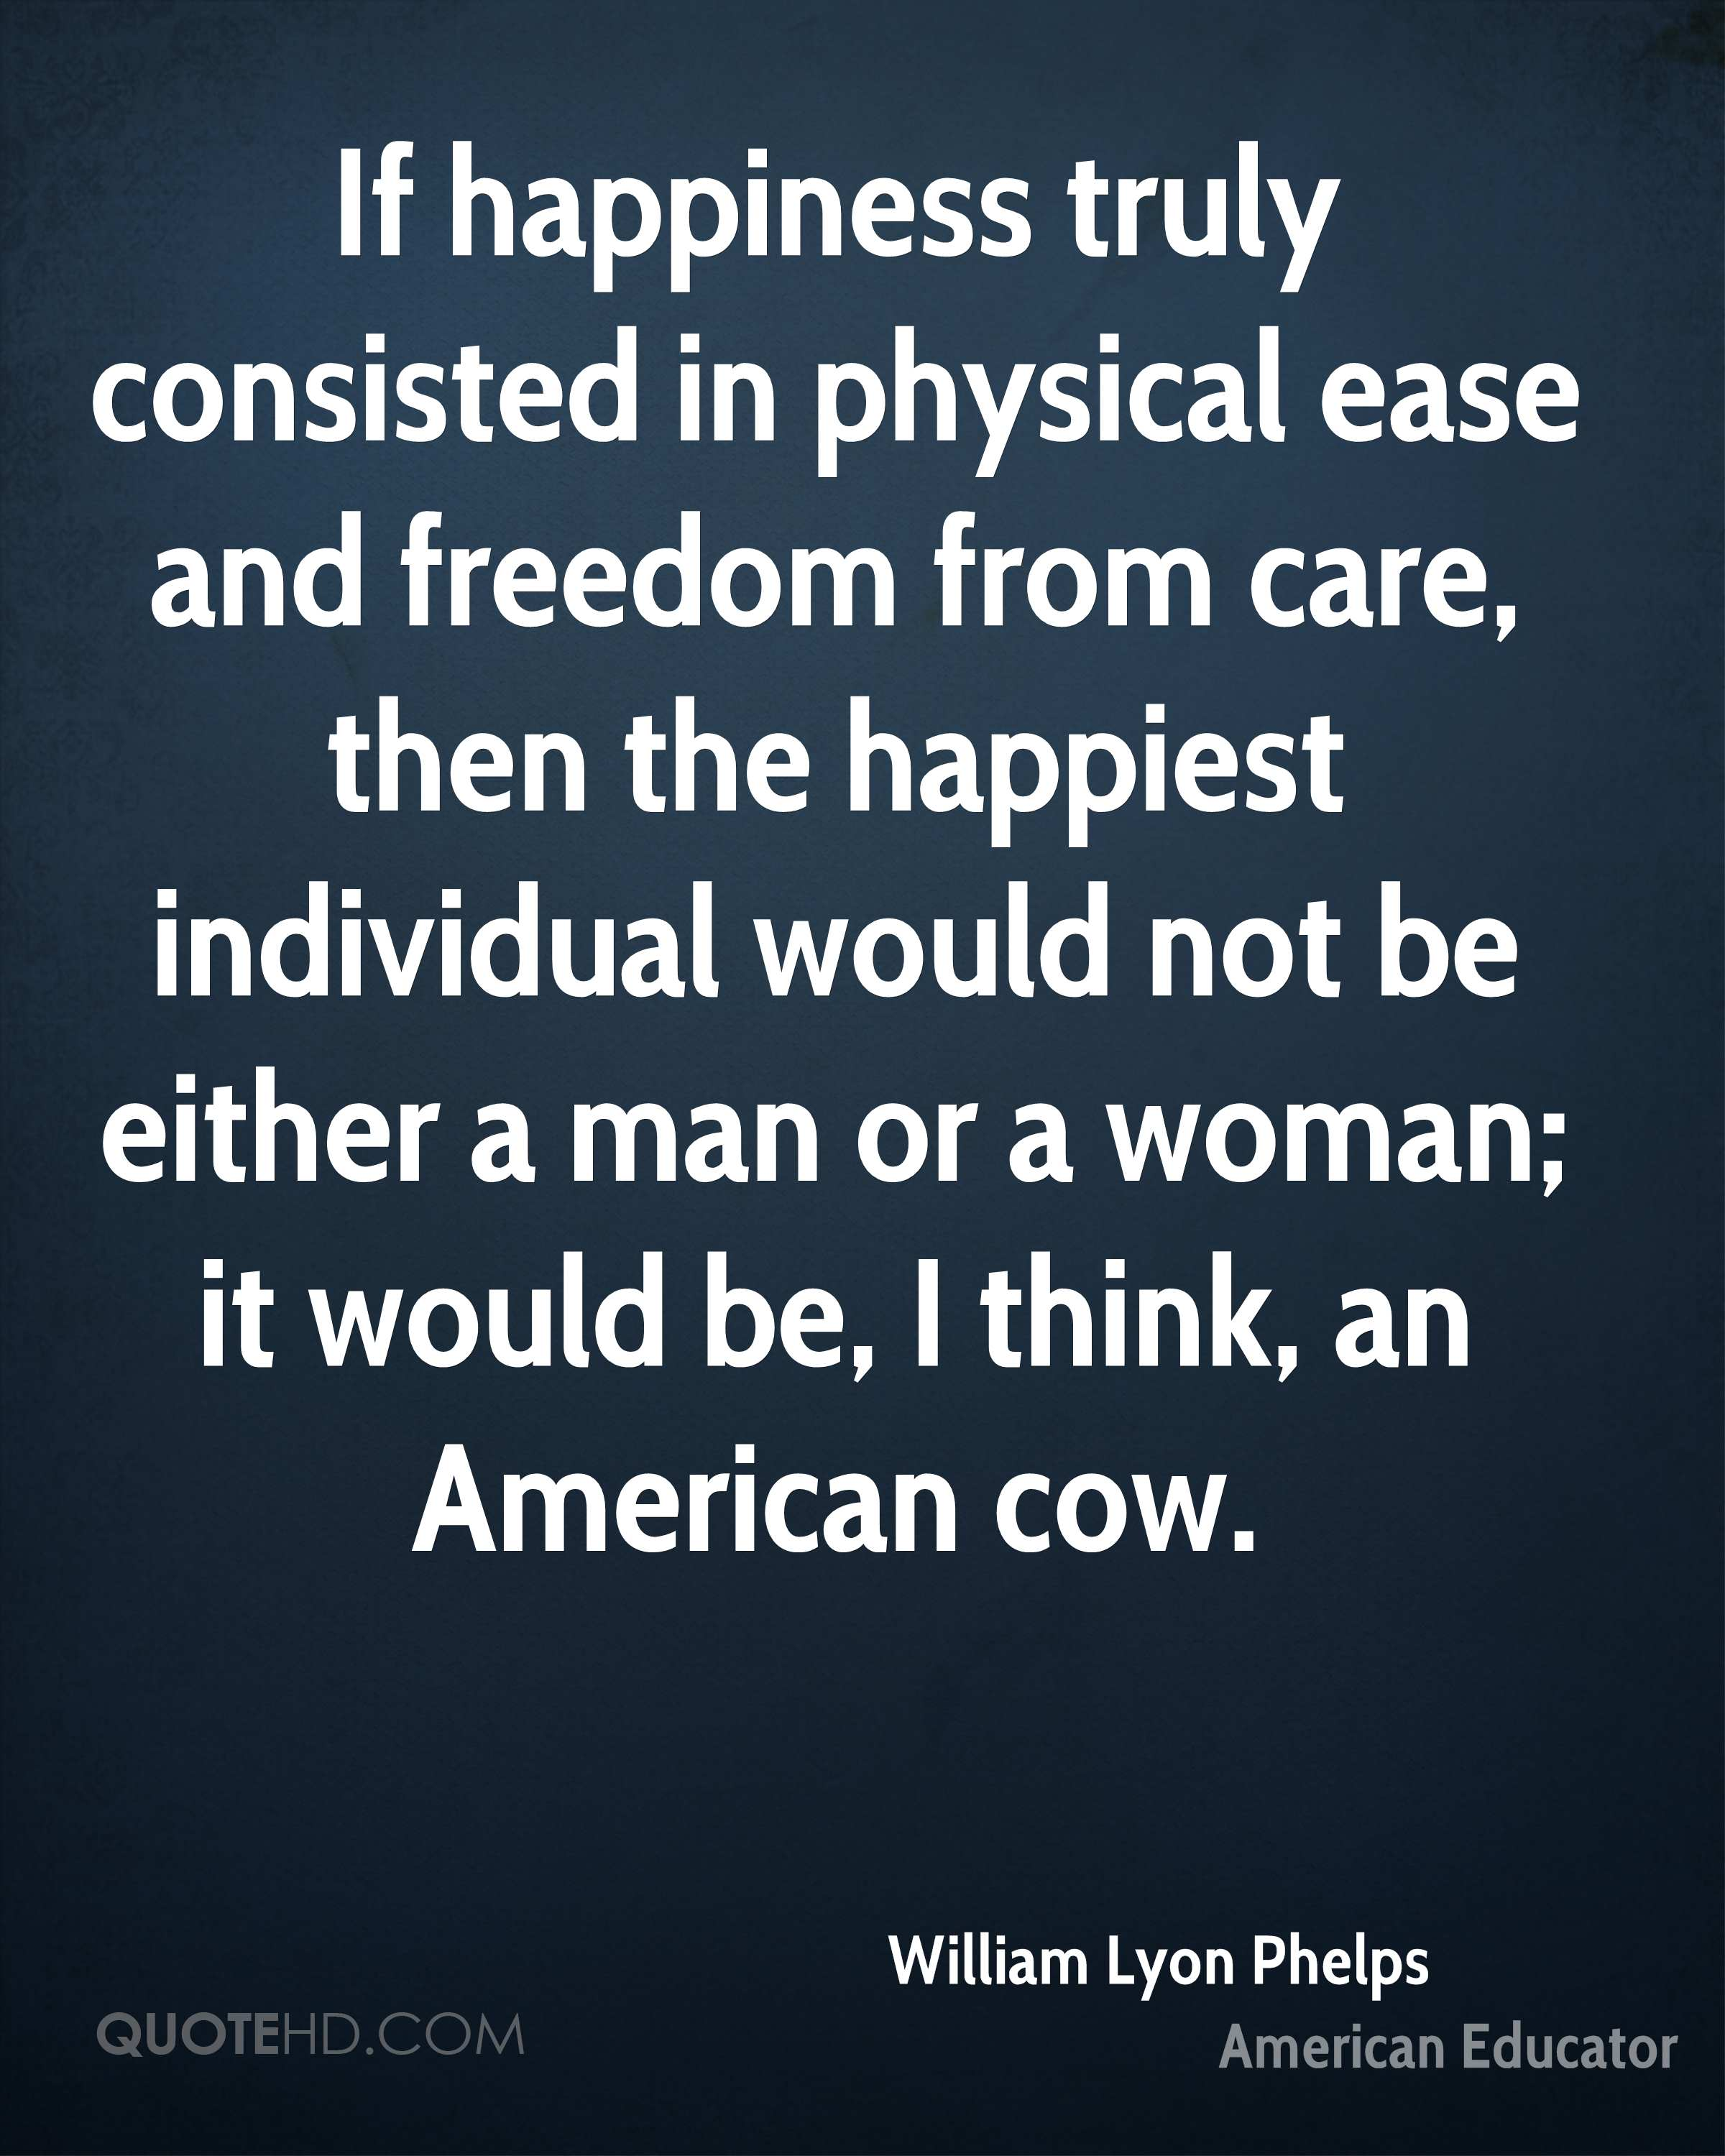 If happiness truly consisted in physical ease and freedom from care, then the happiest individual would not be either a man or a woman; it would be, I think, an American cow.